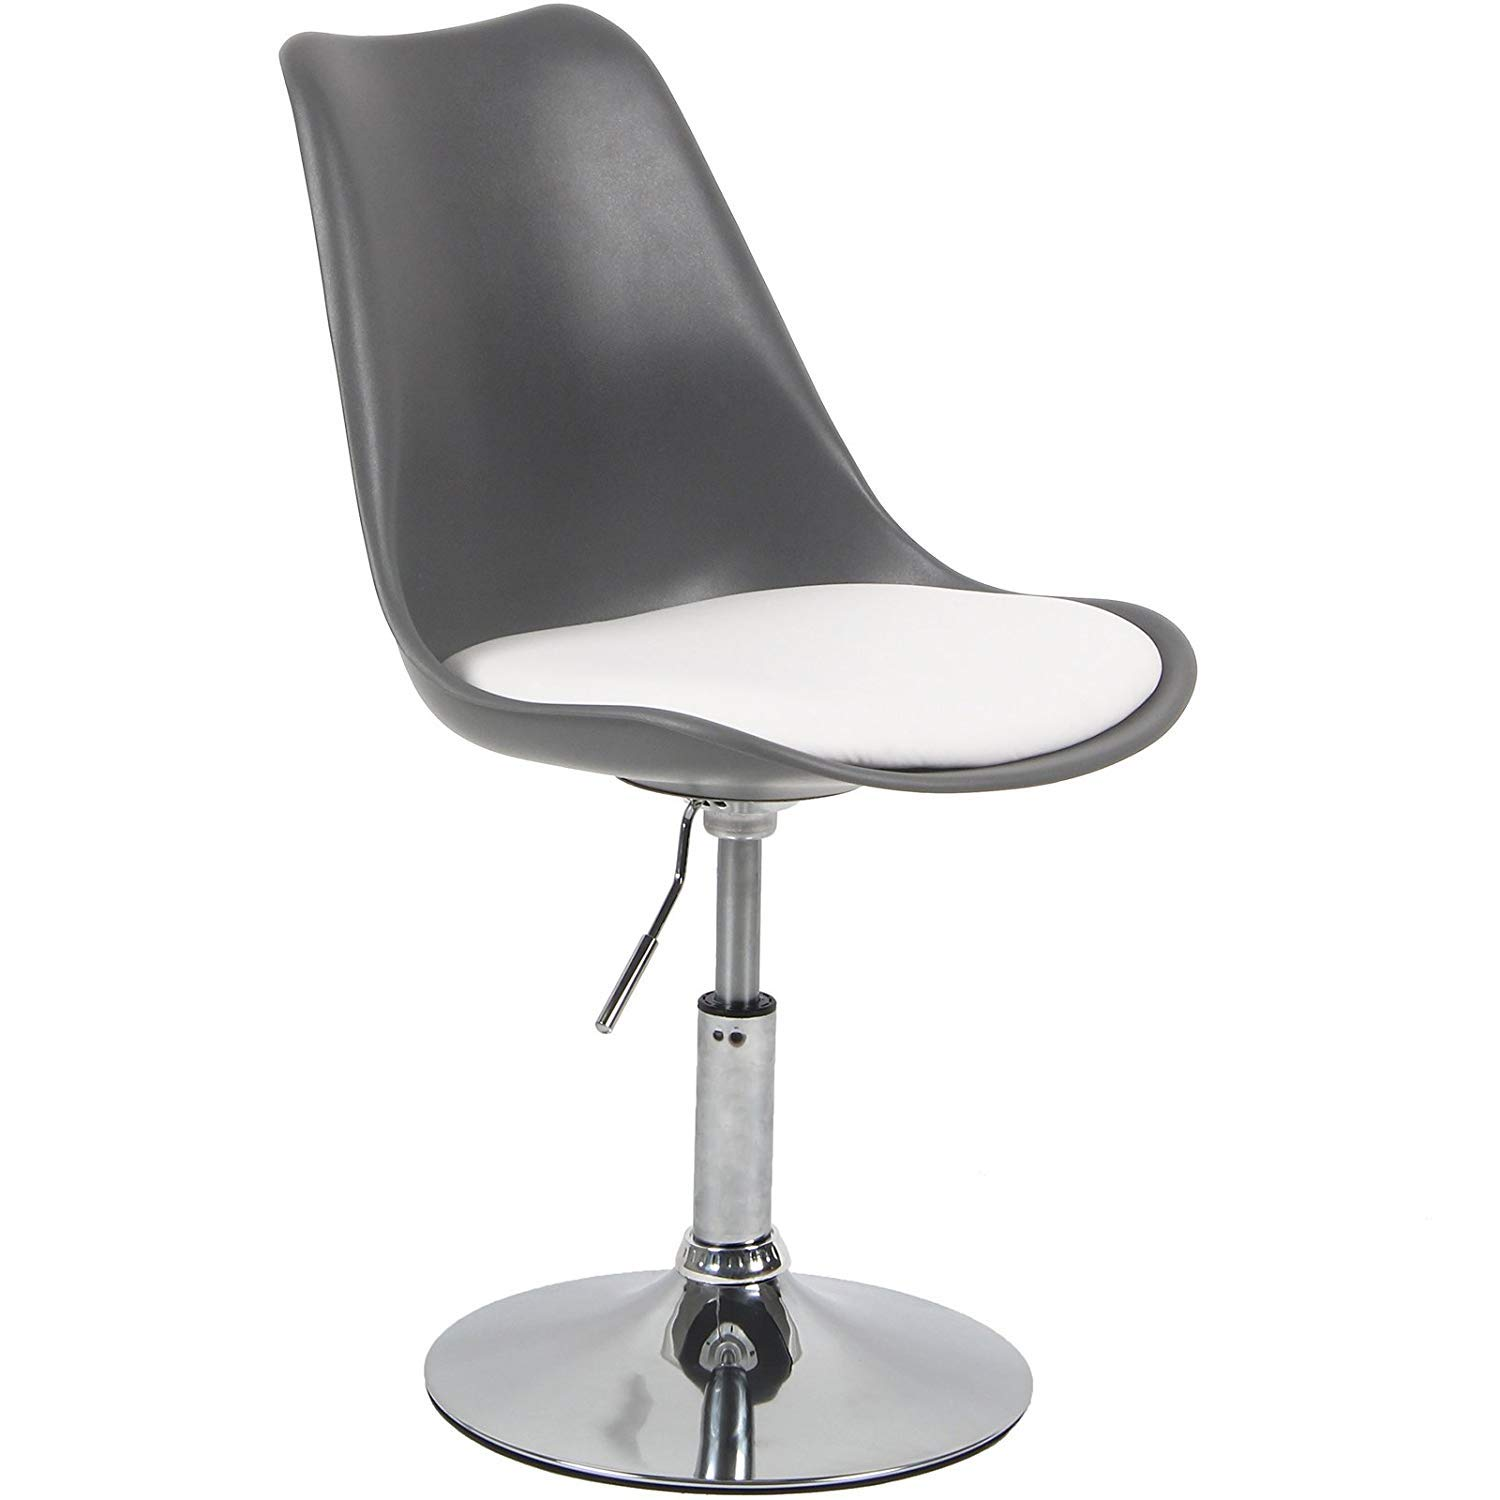 Charles Jacobs Adjustable Tulip Chair With Static Base Grey Seat